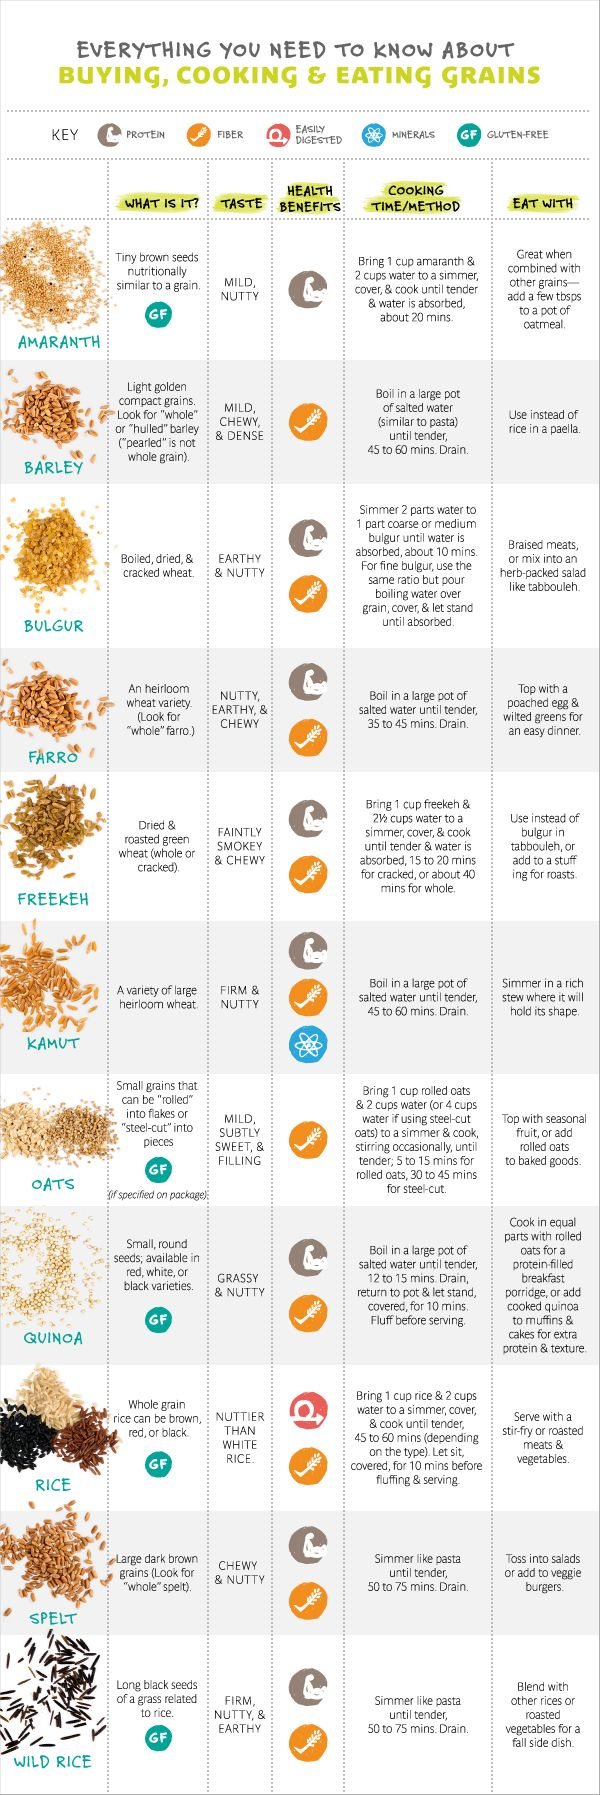 Don't know the difference between farro and freekeh? Kamut and quinoa? Check out our convenient chart.